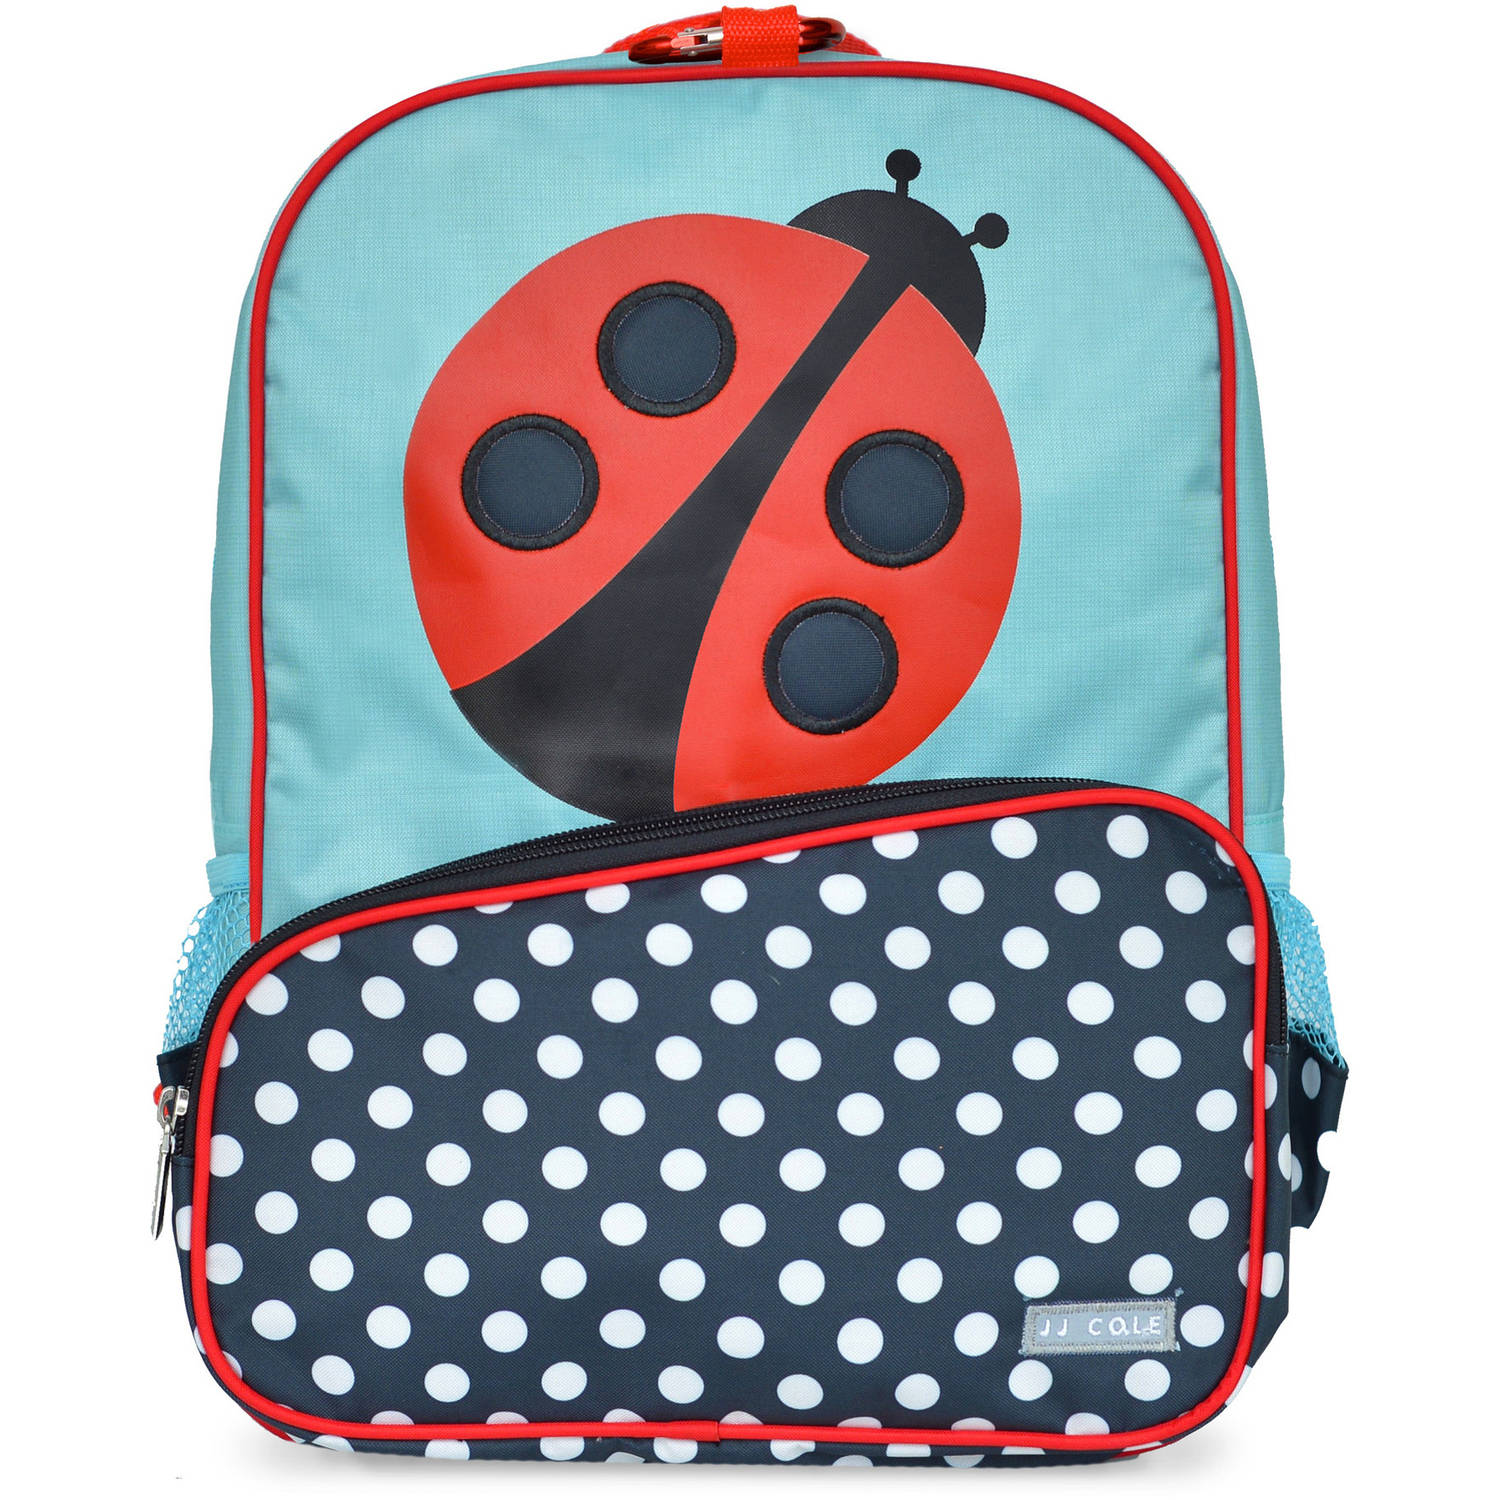 Little JJ Cole Toddler Backpack, Ladybug